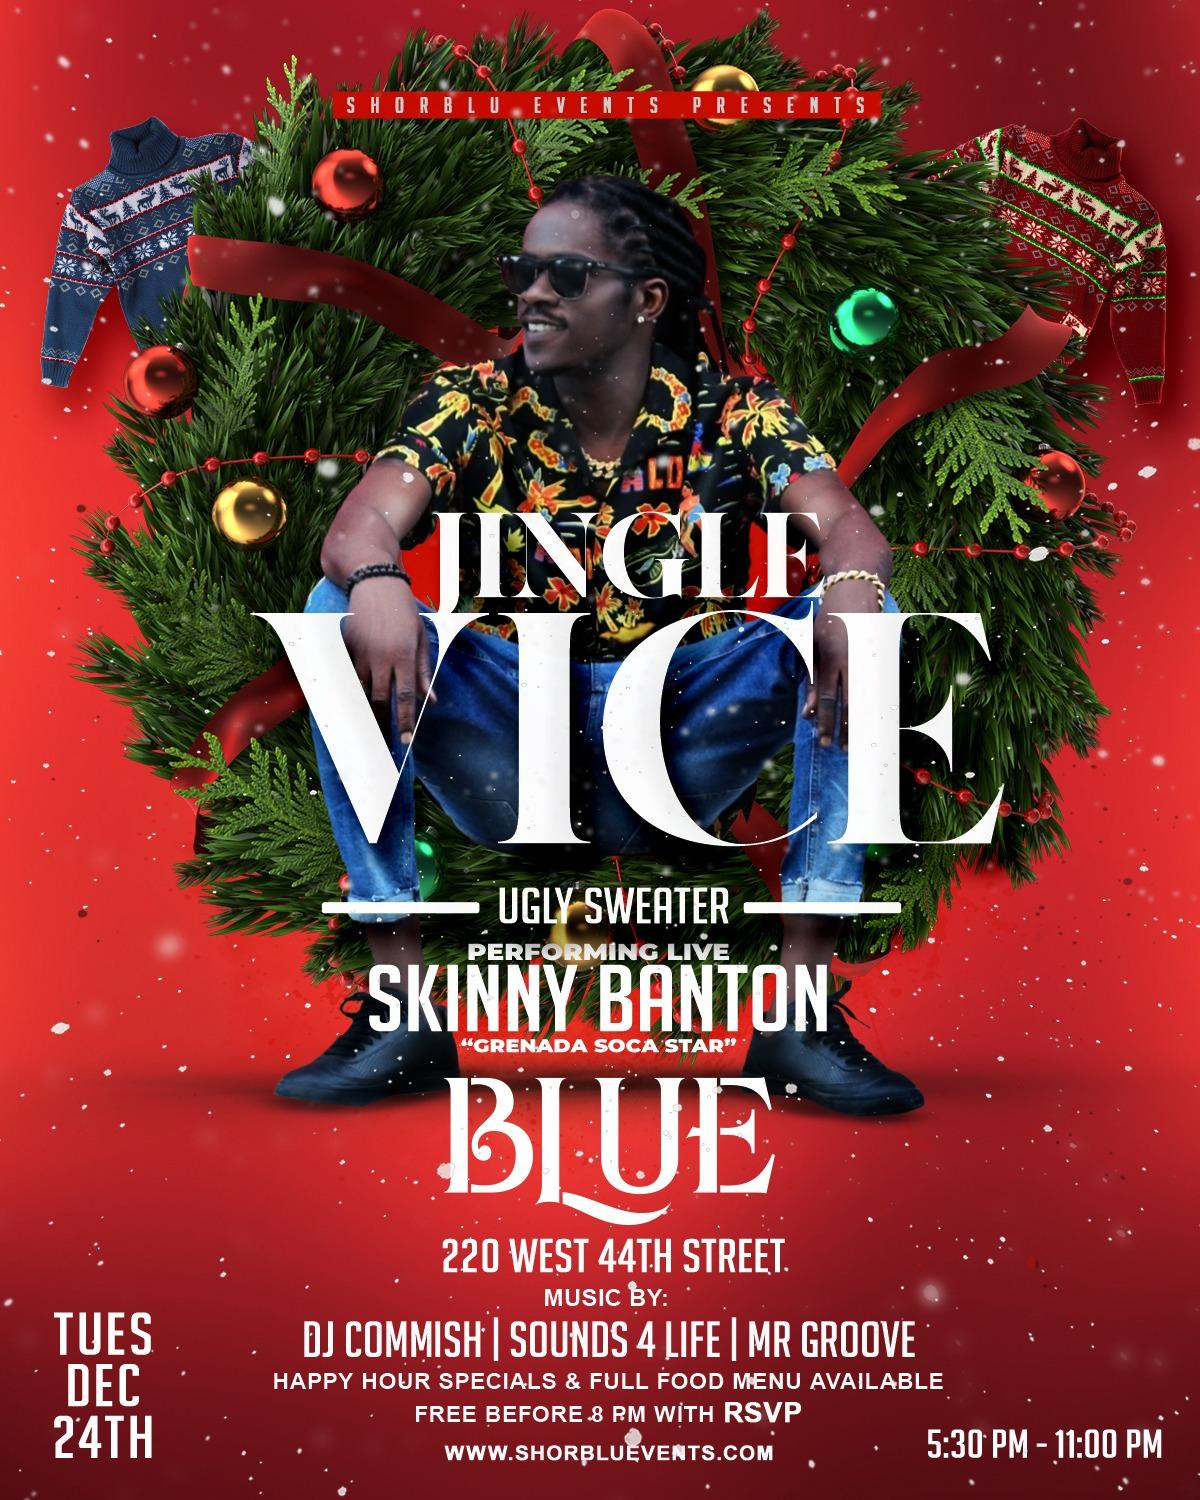 Jingle Vice flyer or graphic.